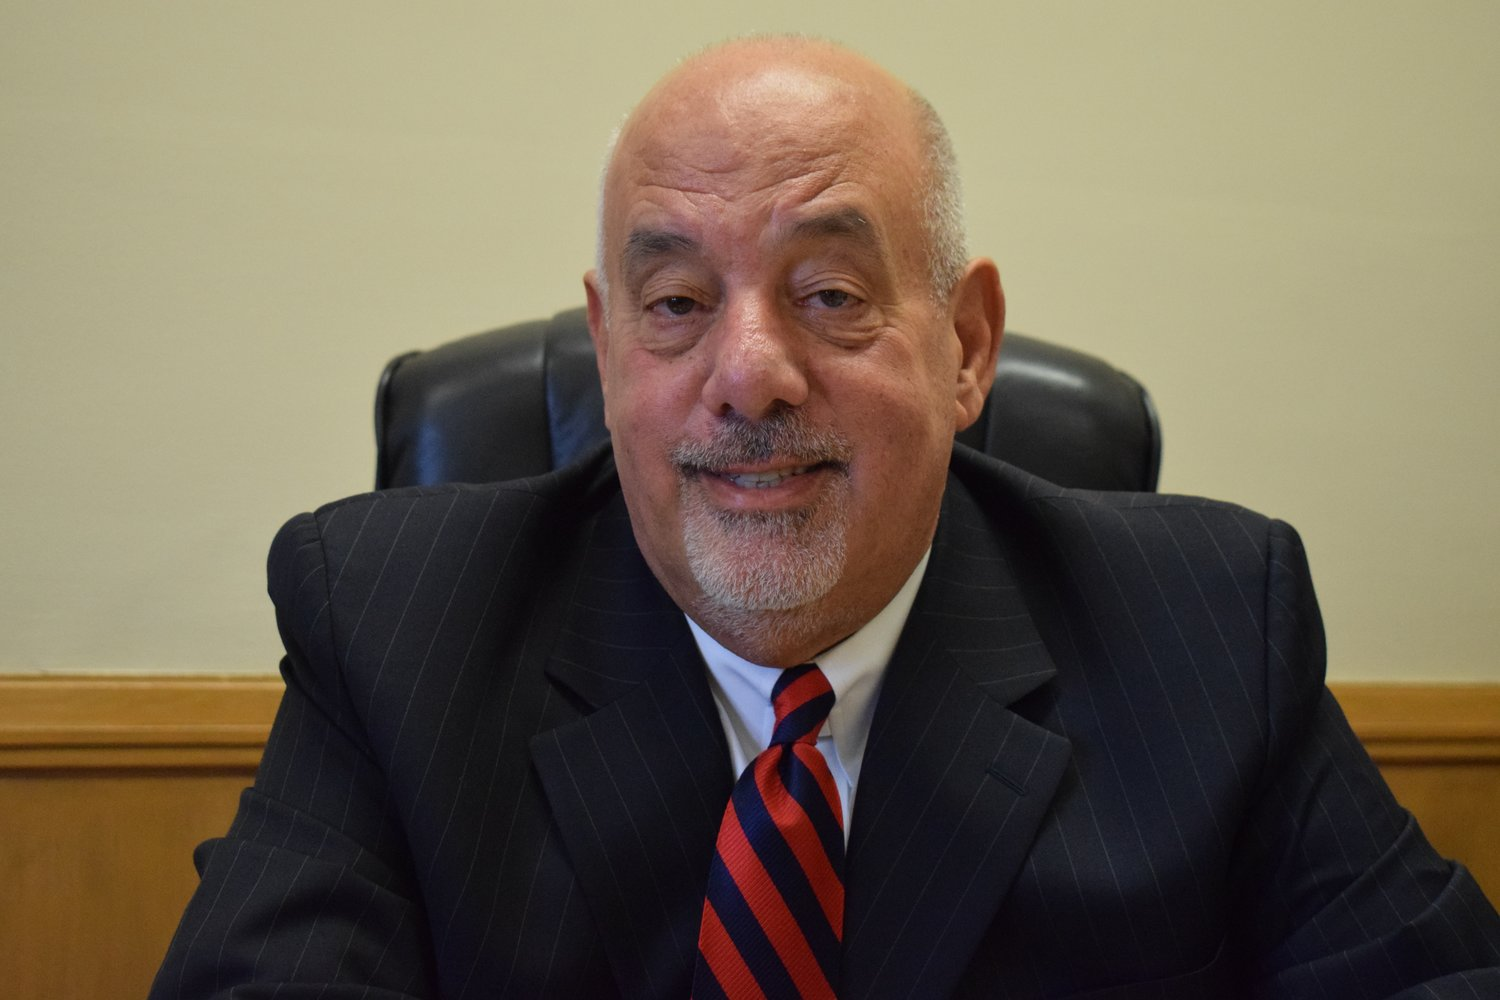 Franklin Square School District Interim-Superintendent Rainer Melucci joined the district in December.